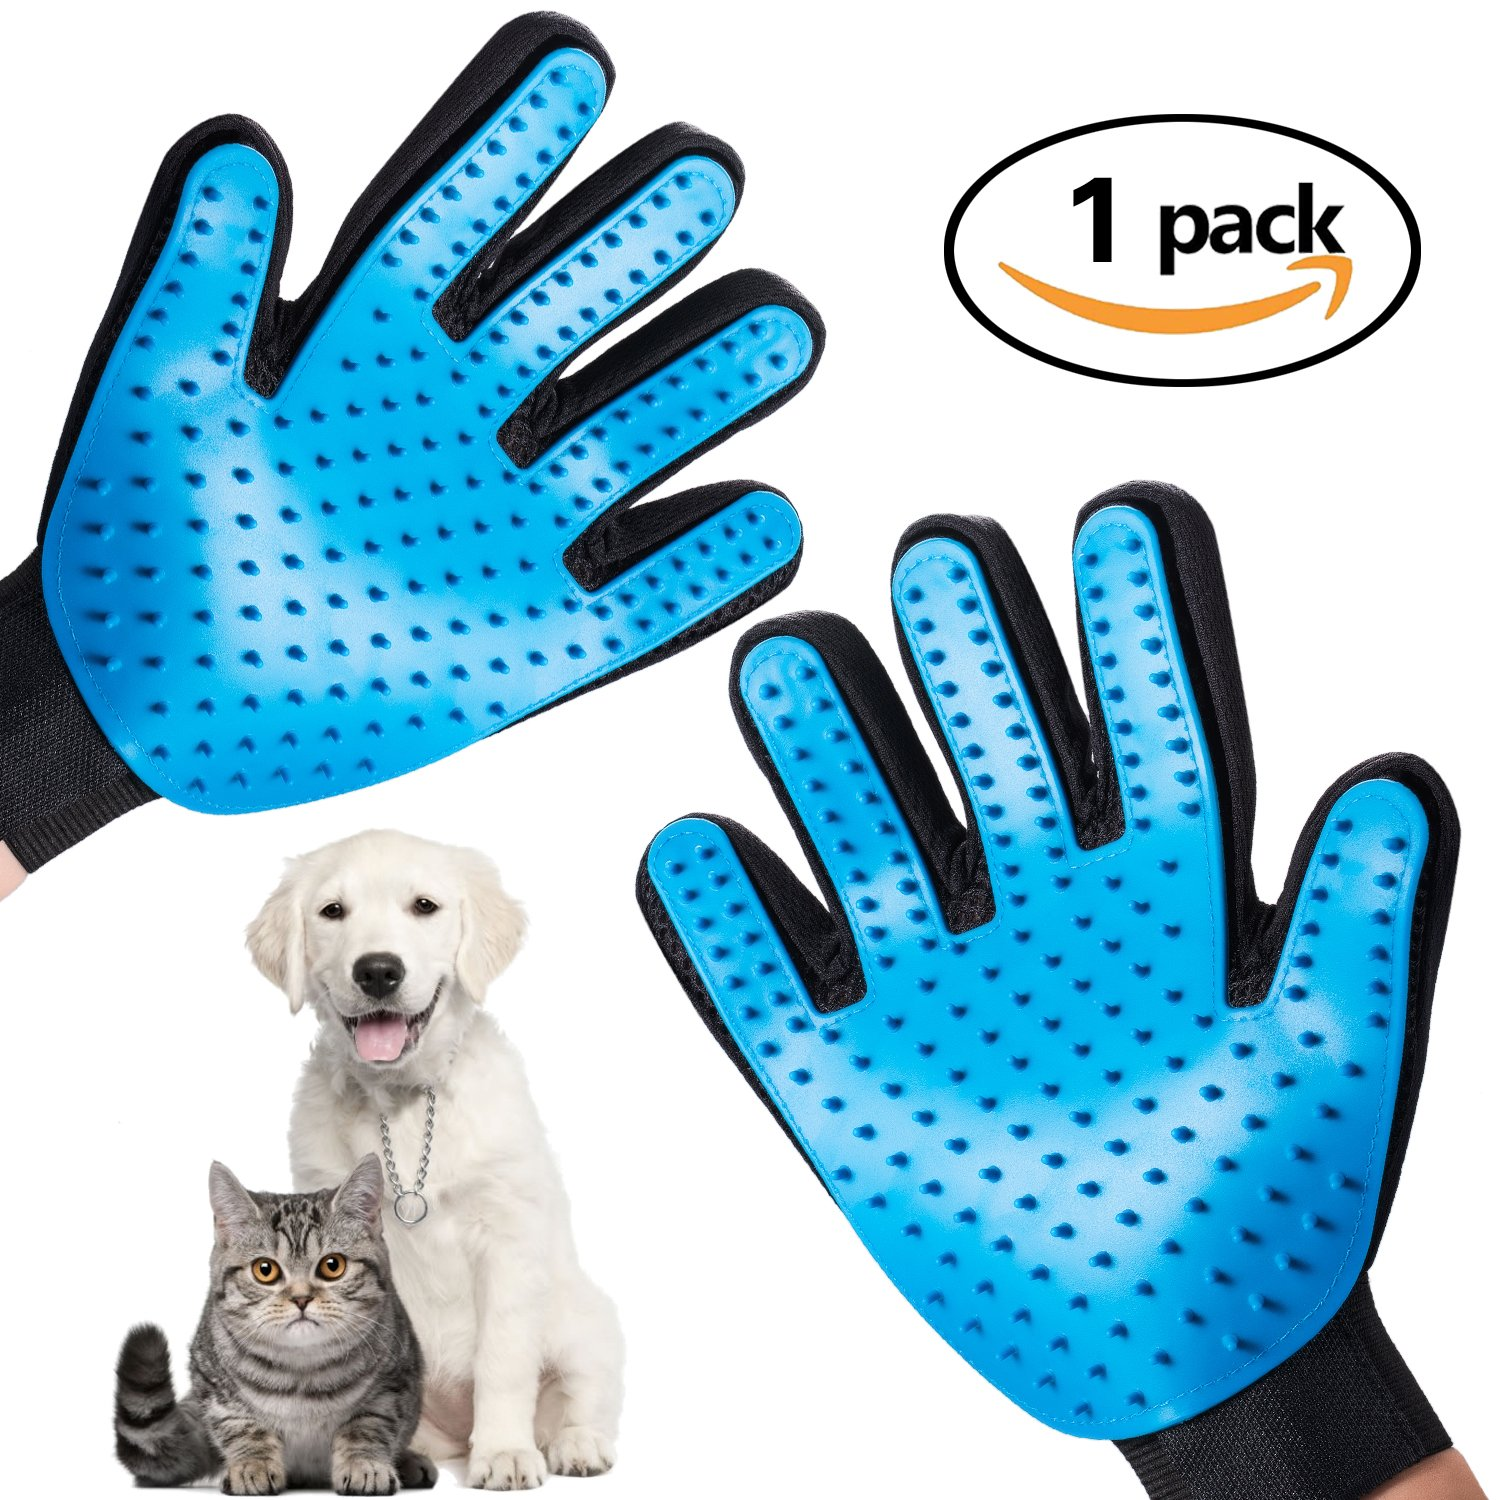 Pet Grooming Gloves Update Version, Deshedding Glove, Pet Brush,Pet Hair Remover Mitts for Dogs, Cats, Horses to Cleaning, Bathing, Grooming, Shedding (Blue)